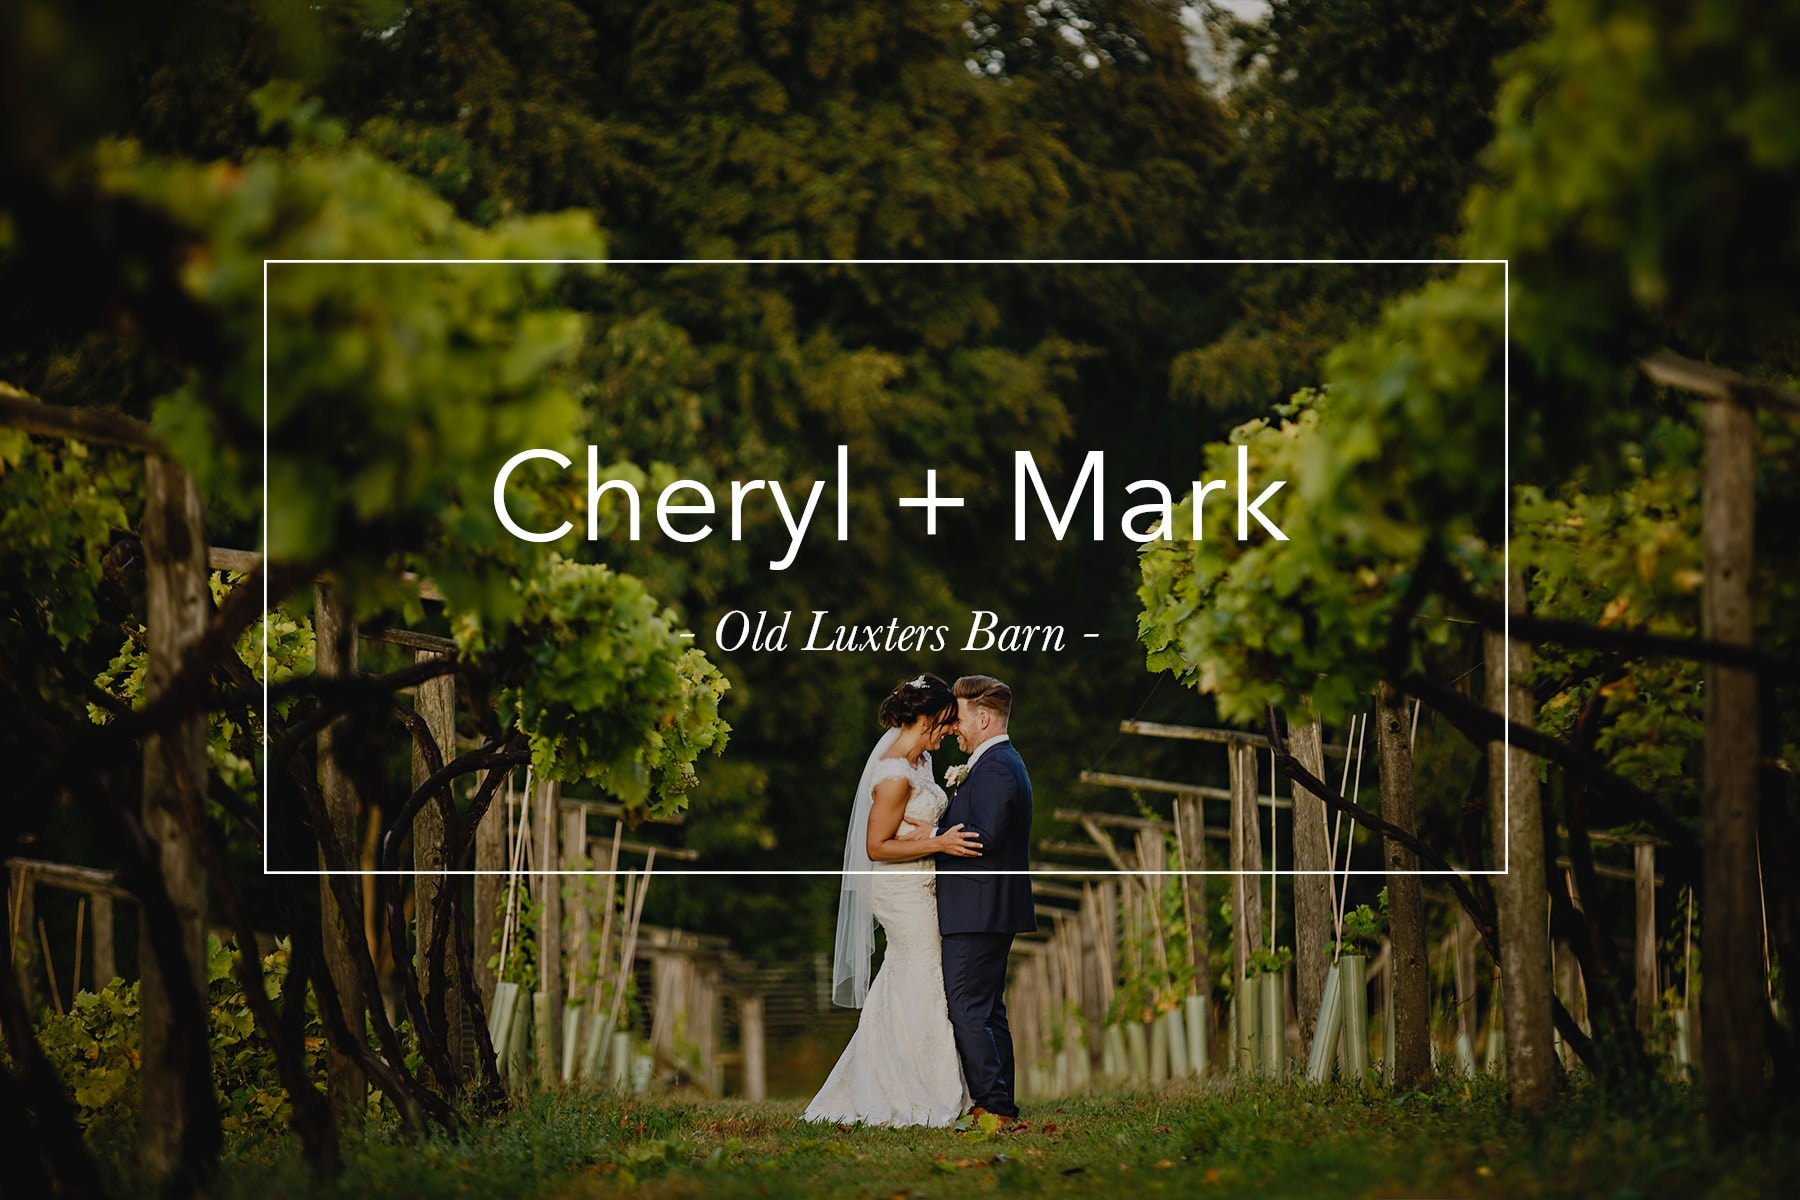 The bride and groom stood together in the vineyard at Old Luxters Barn